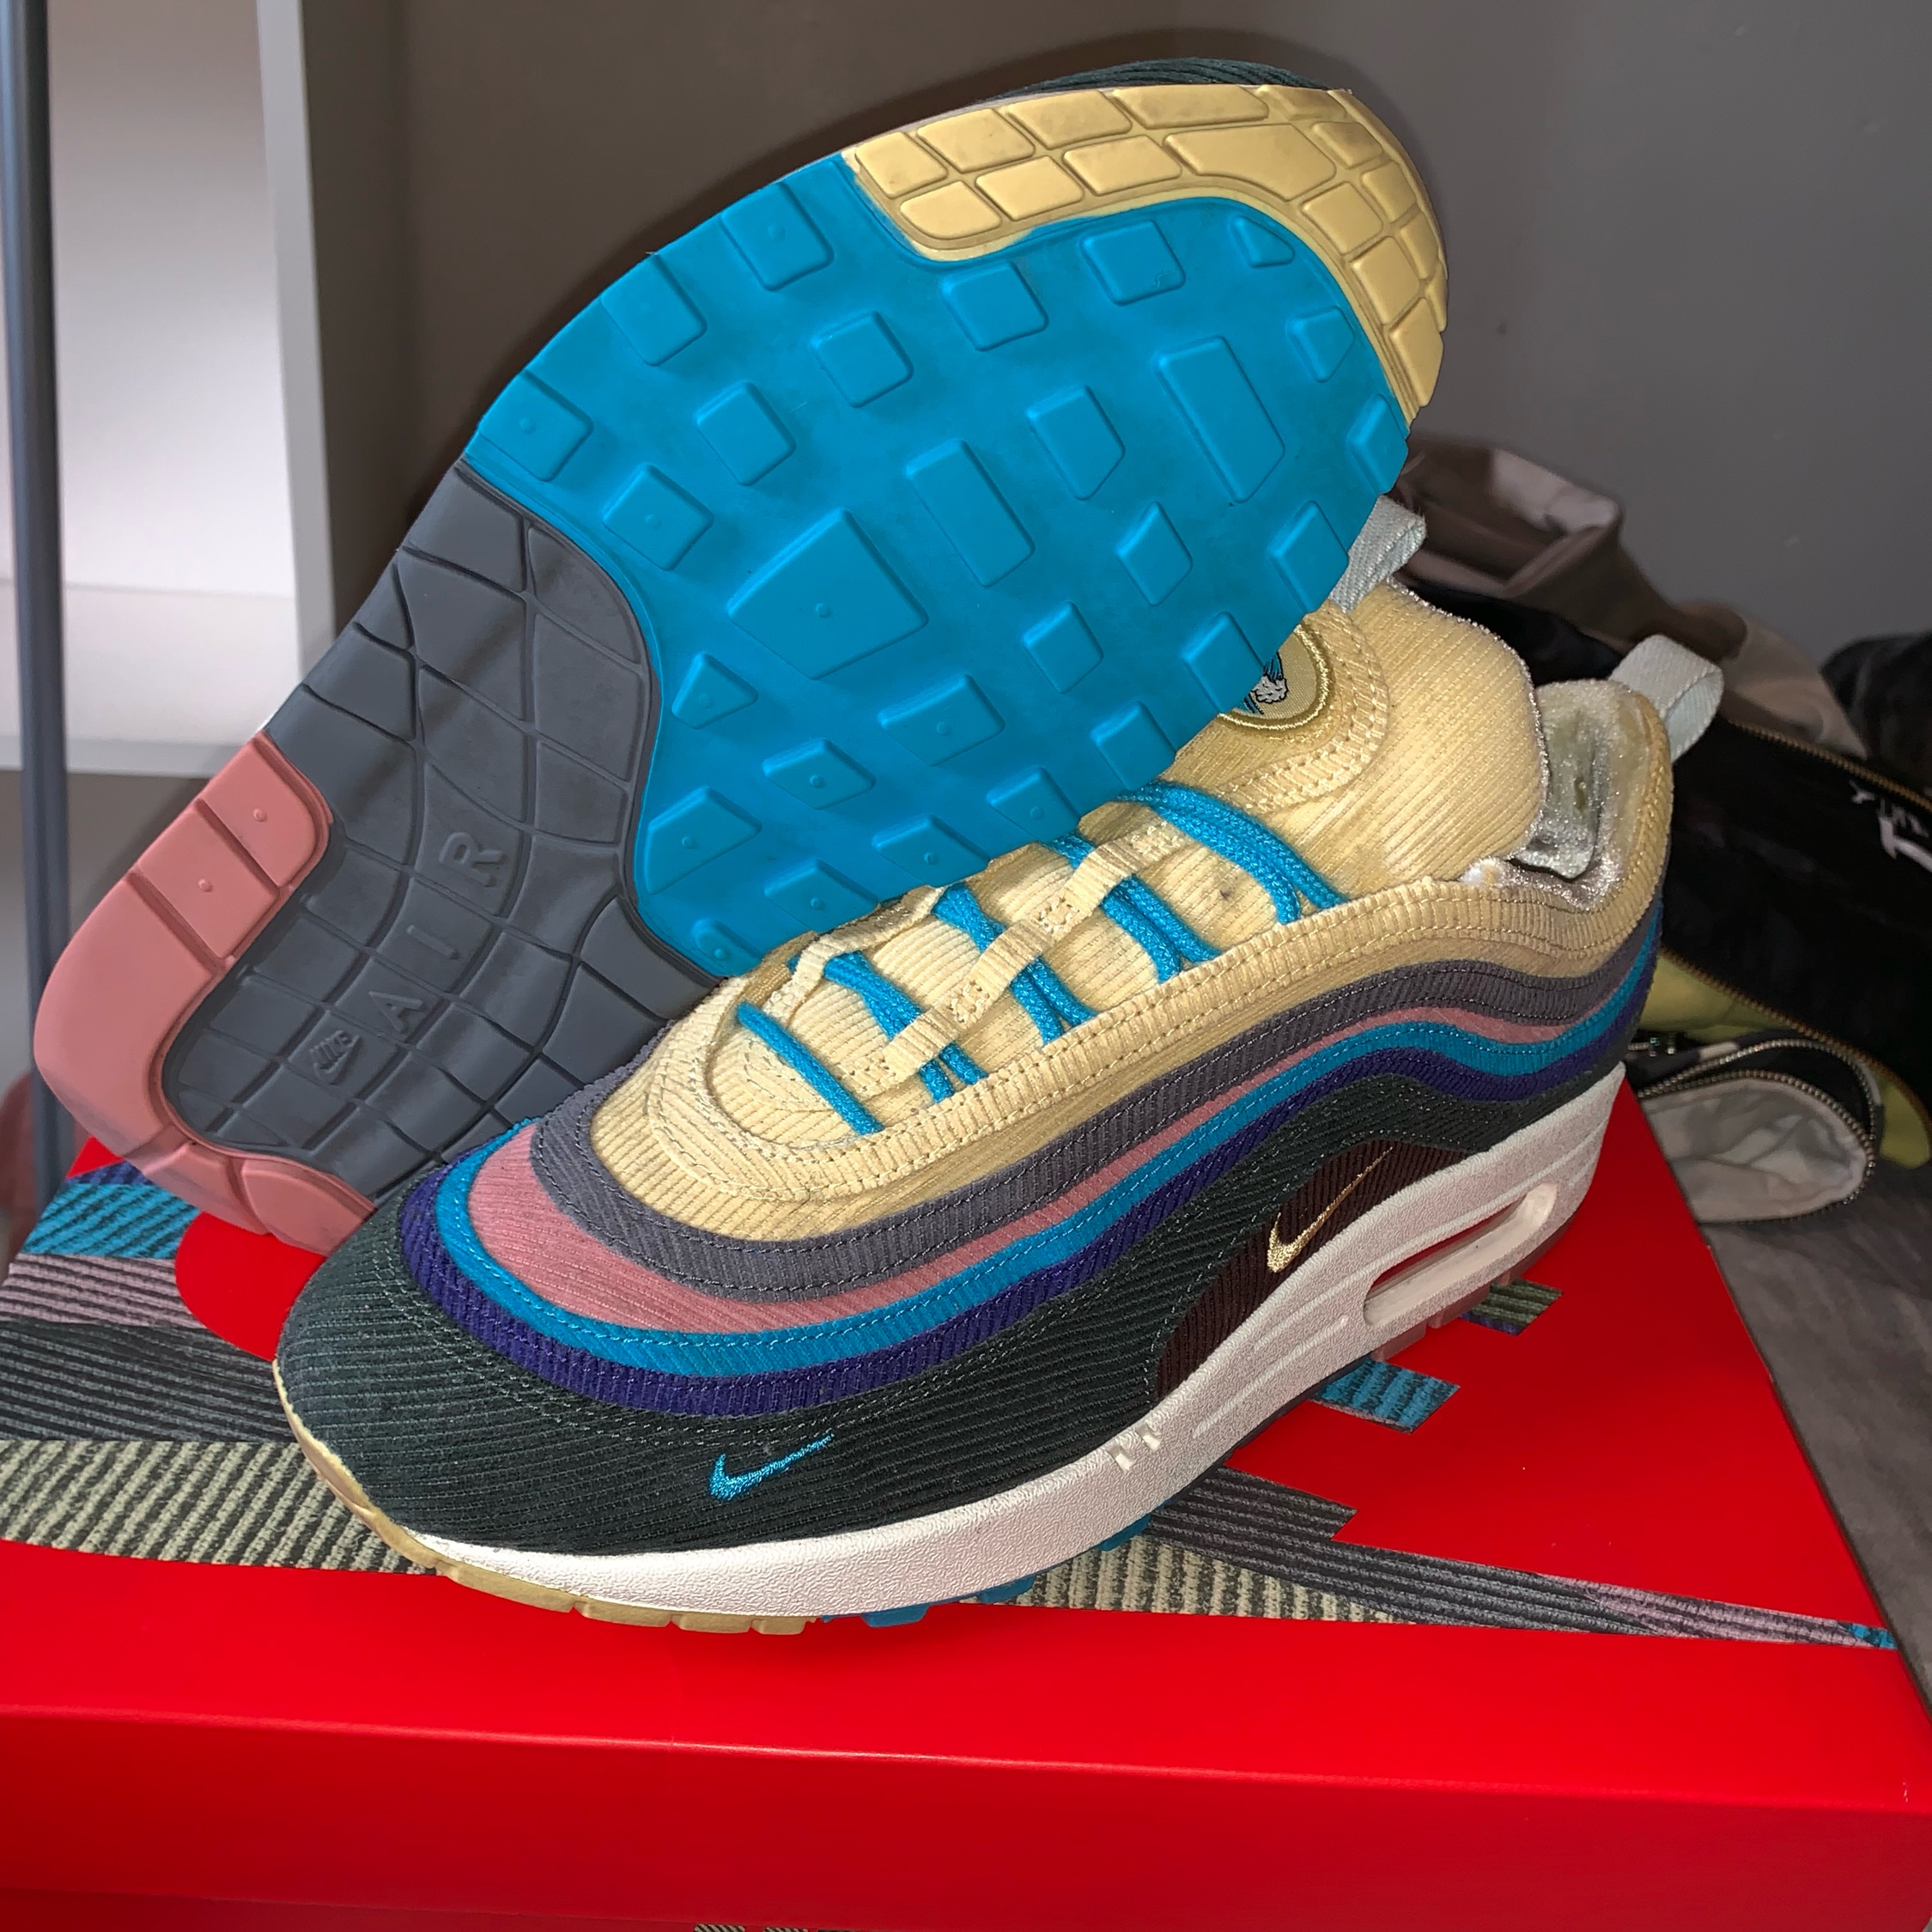 huge discount 859e2 2c1ea Air Max 1/97 Vf Sean Wotherspoon